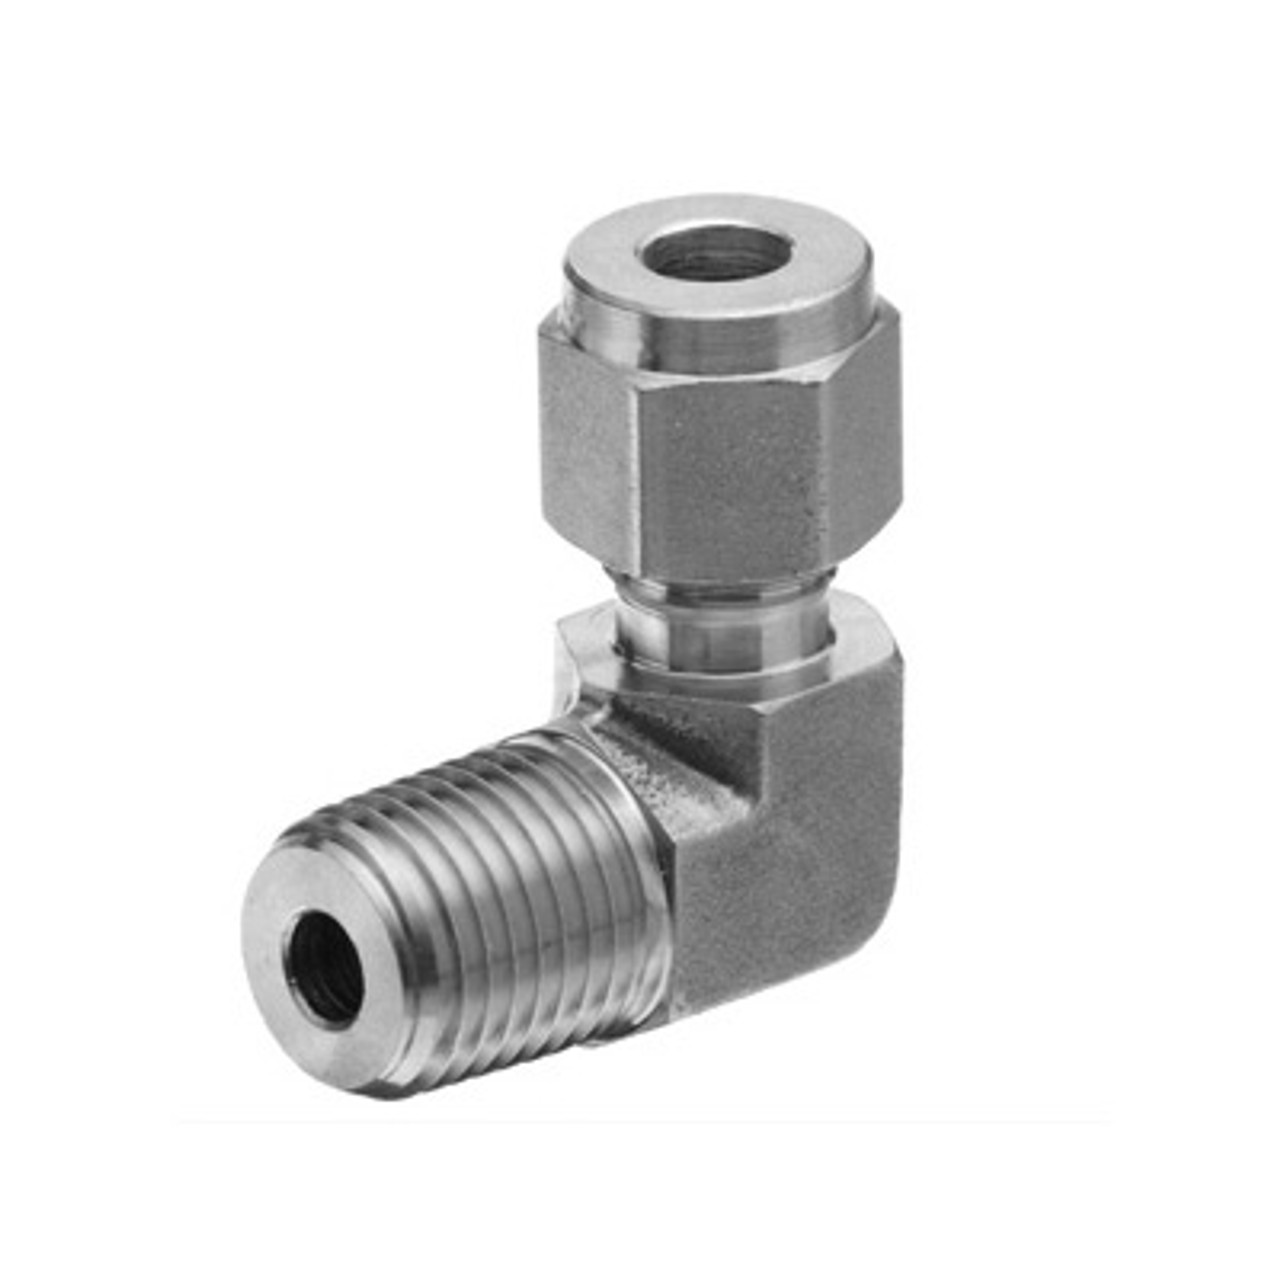 1 4 Npt >> Compression Fittings Stainless Steel 3 8 Tube X 1 4 Npt Male Elbows